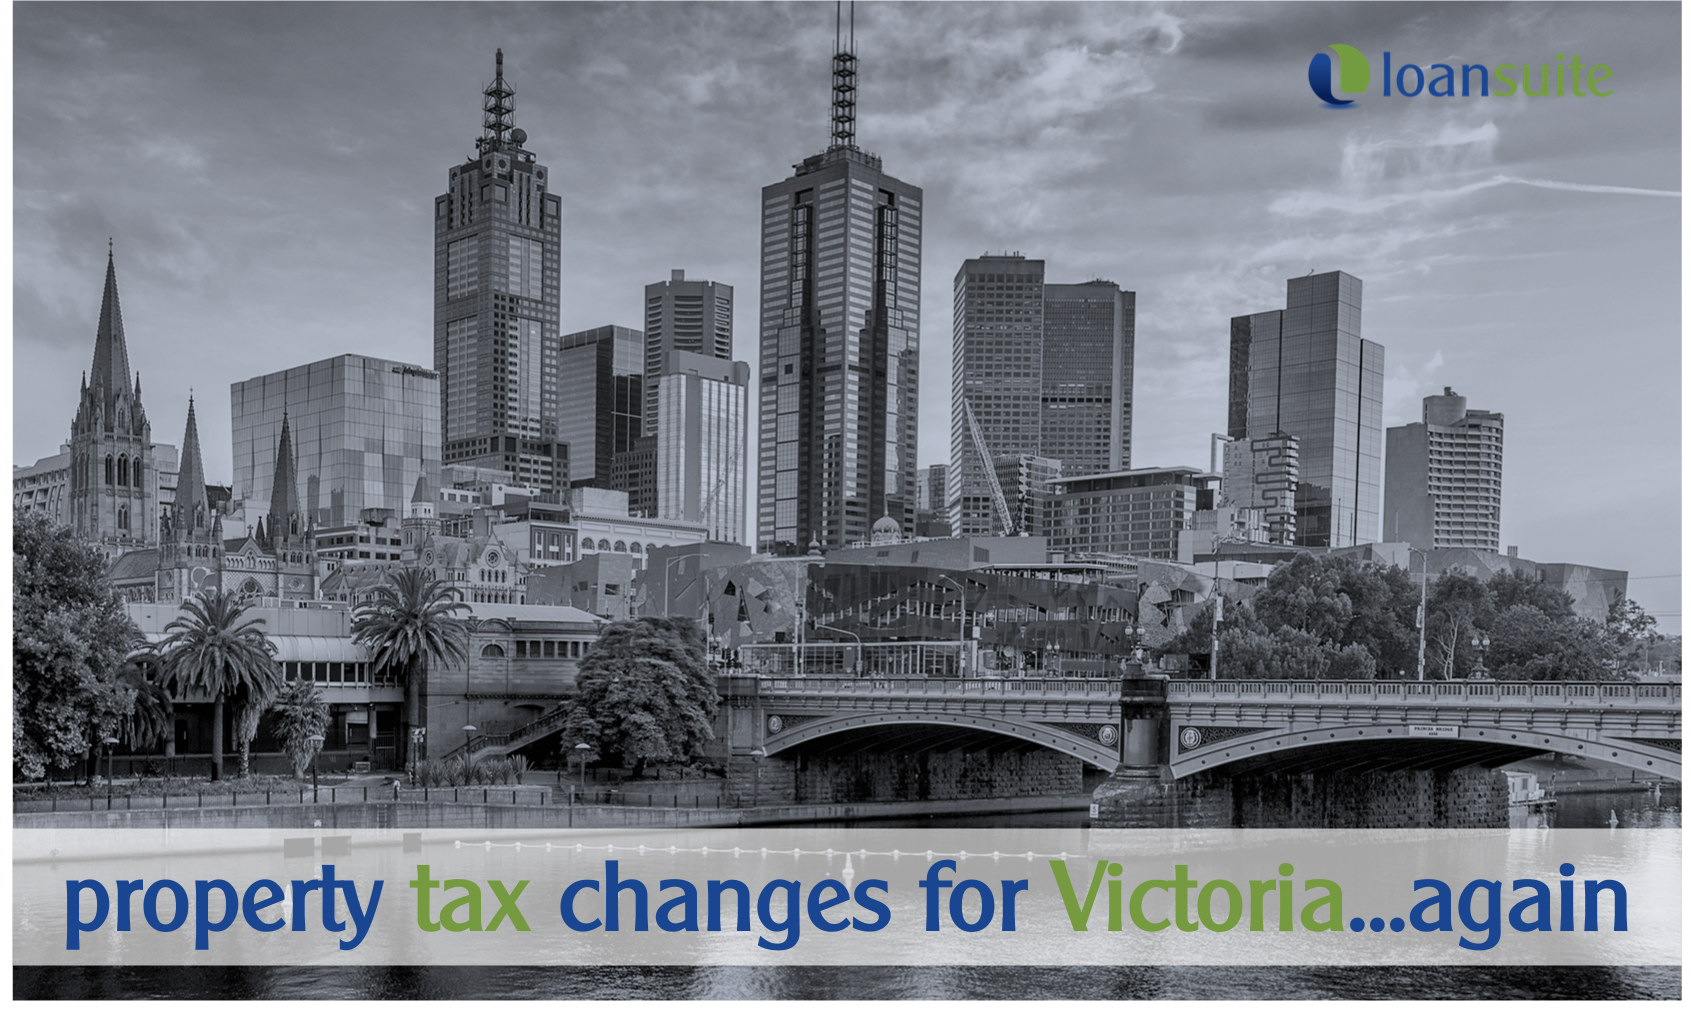 High End Property Buyers in Victoria Hit with Tax - Loansuite - Mortgage Brokers for Australian Expats